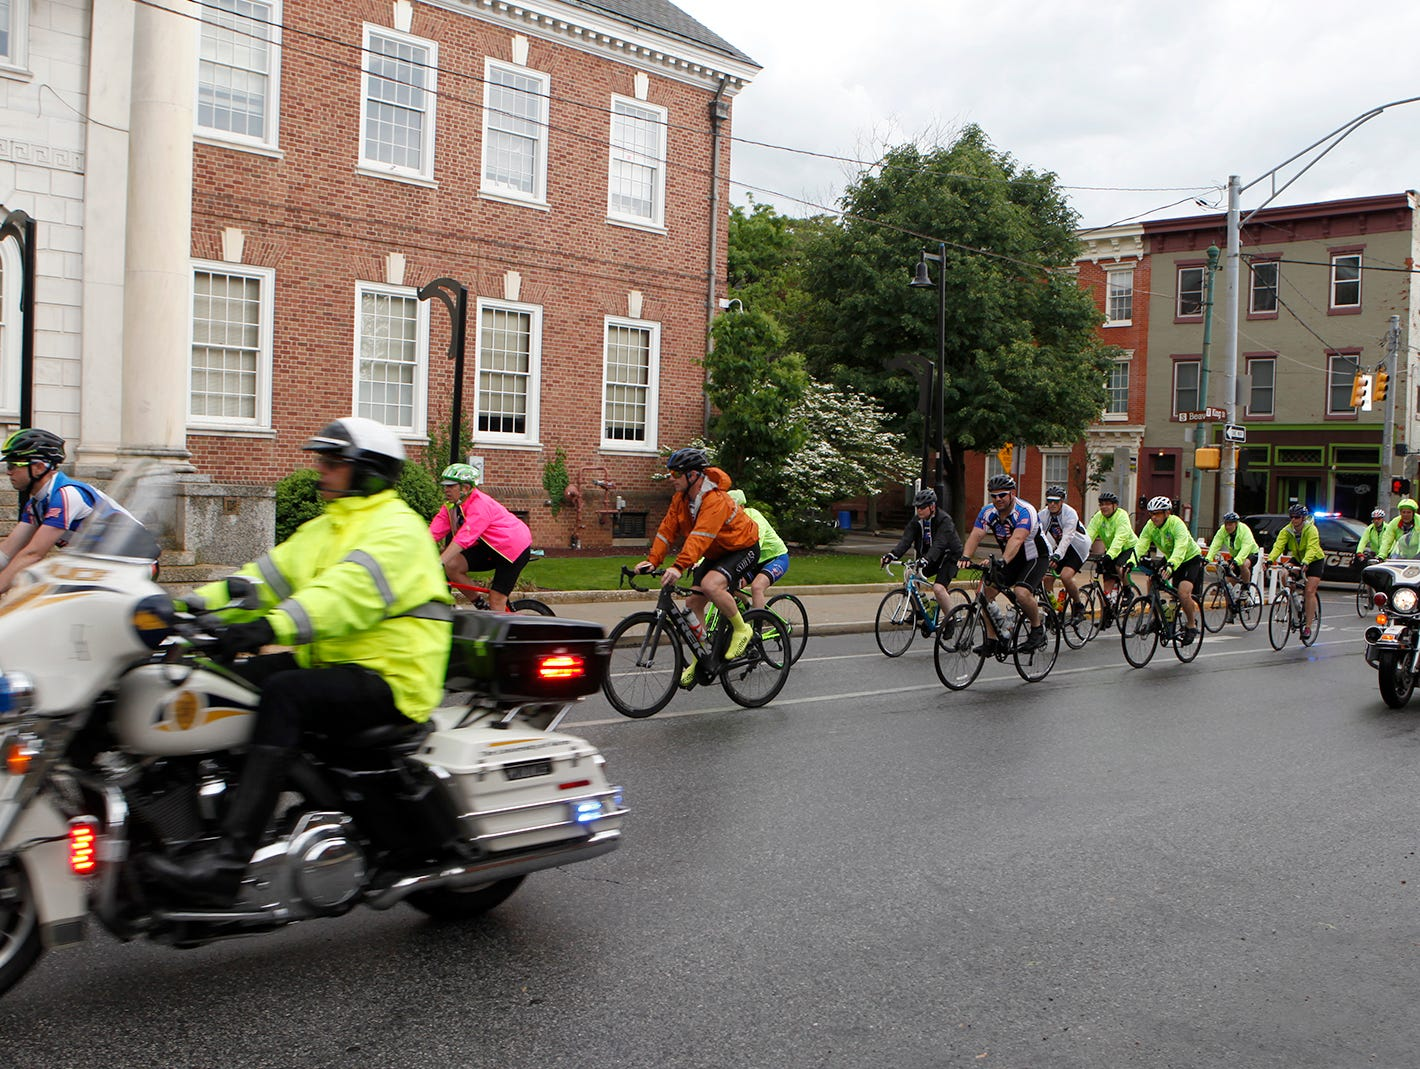 Bicyclist's arrive at the York City Police Department to hold a short memorial service for Officer Alex Sable during the 10th annual Law Enforcement United Road to Hope, Saturday, May 11, 2019.